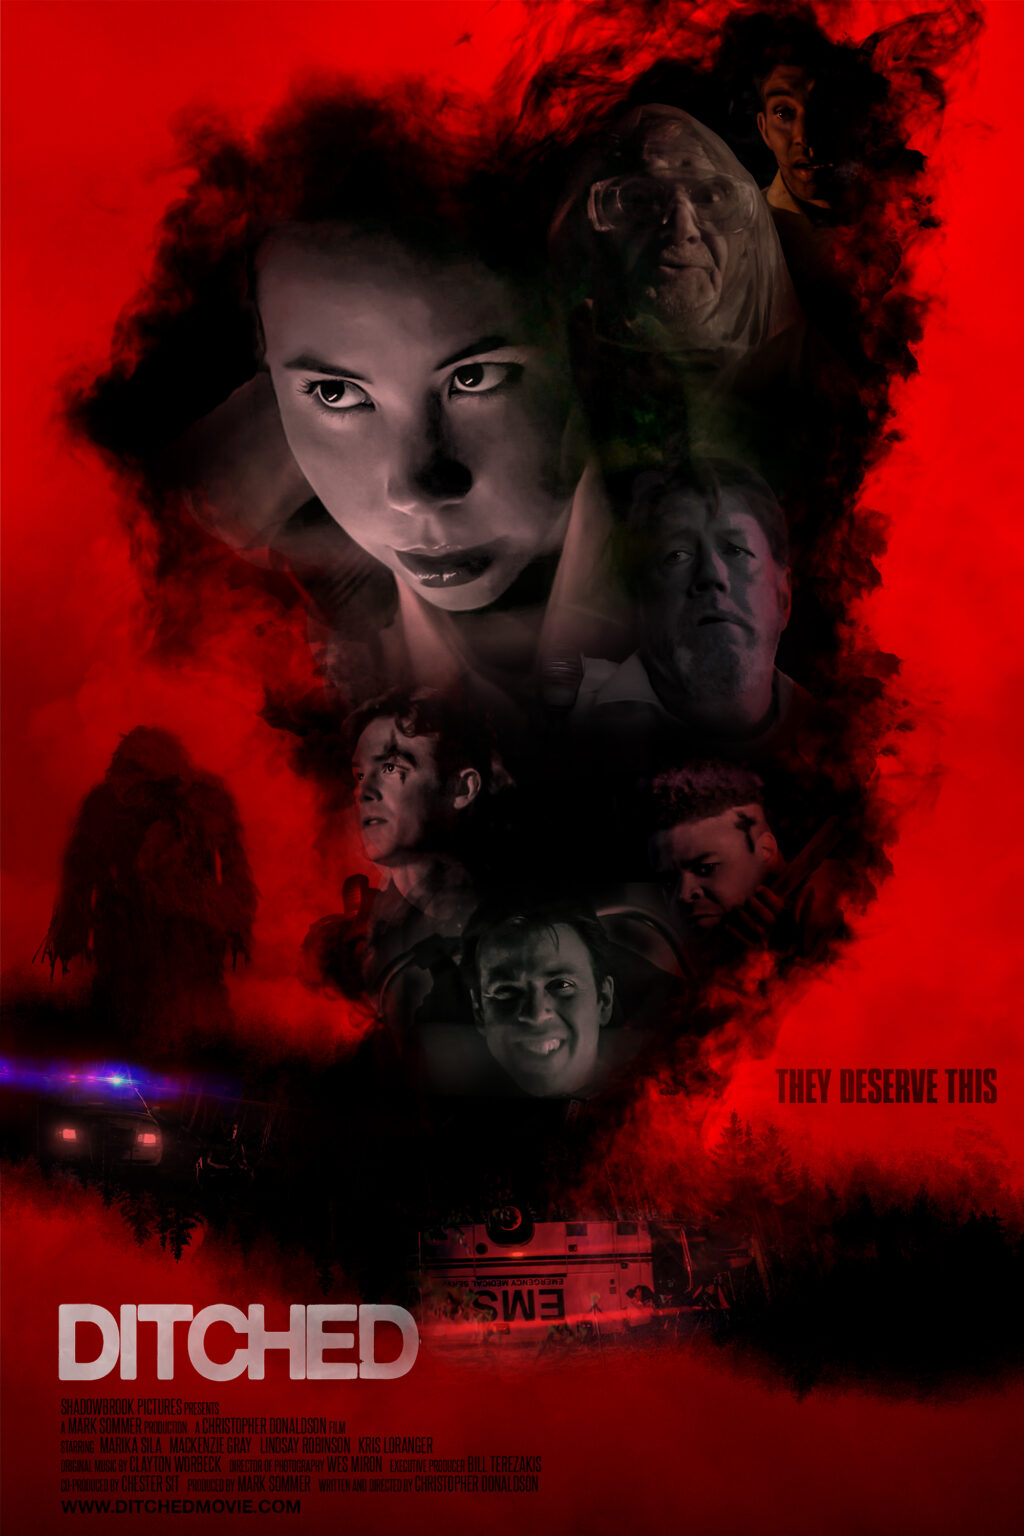 DITCHED 24 x36 One Sheet small 1024x1536 - Exclusive Poster and Images from DITCHED World Premiering at Popcorn Frights